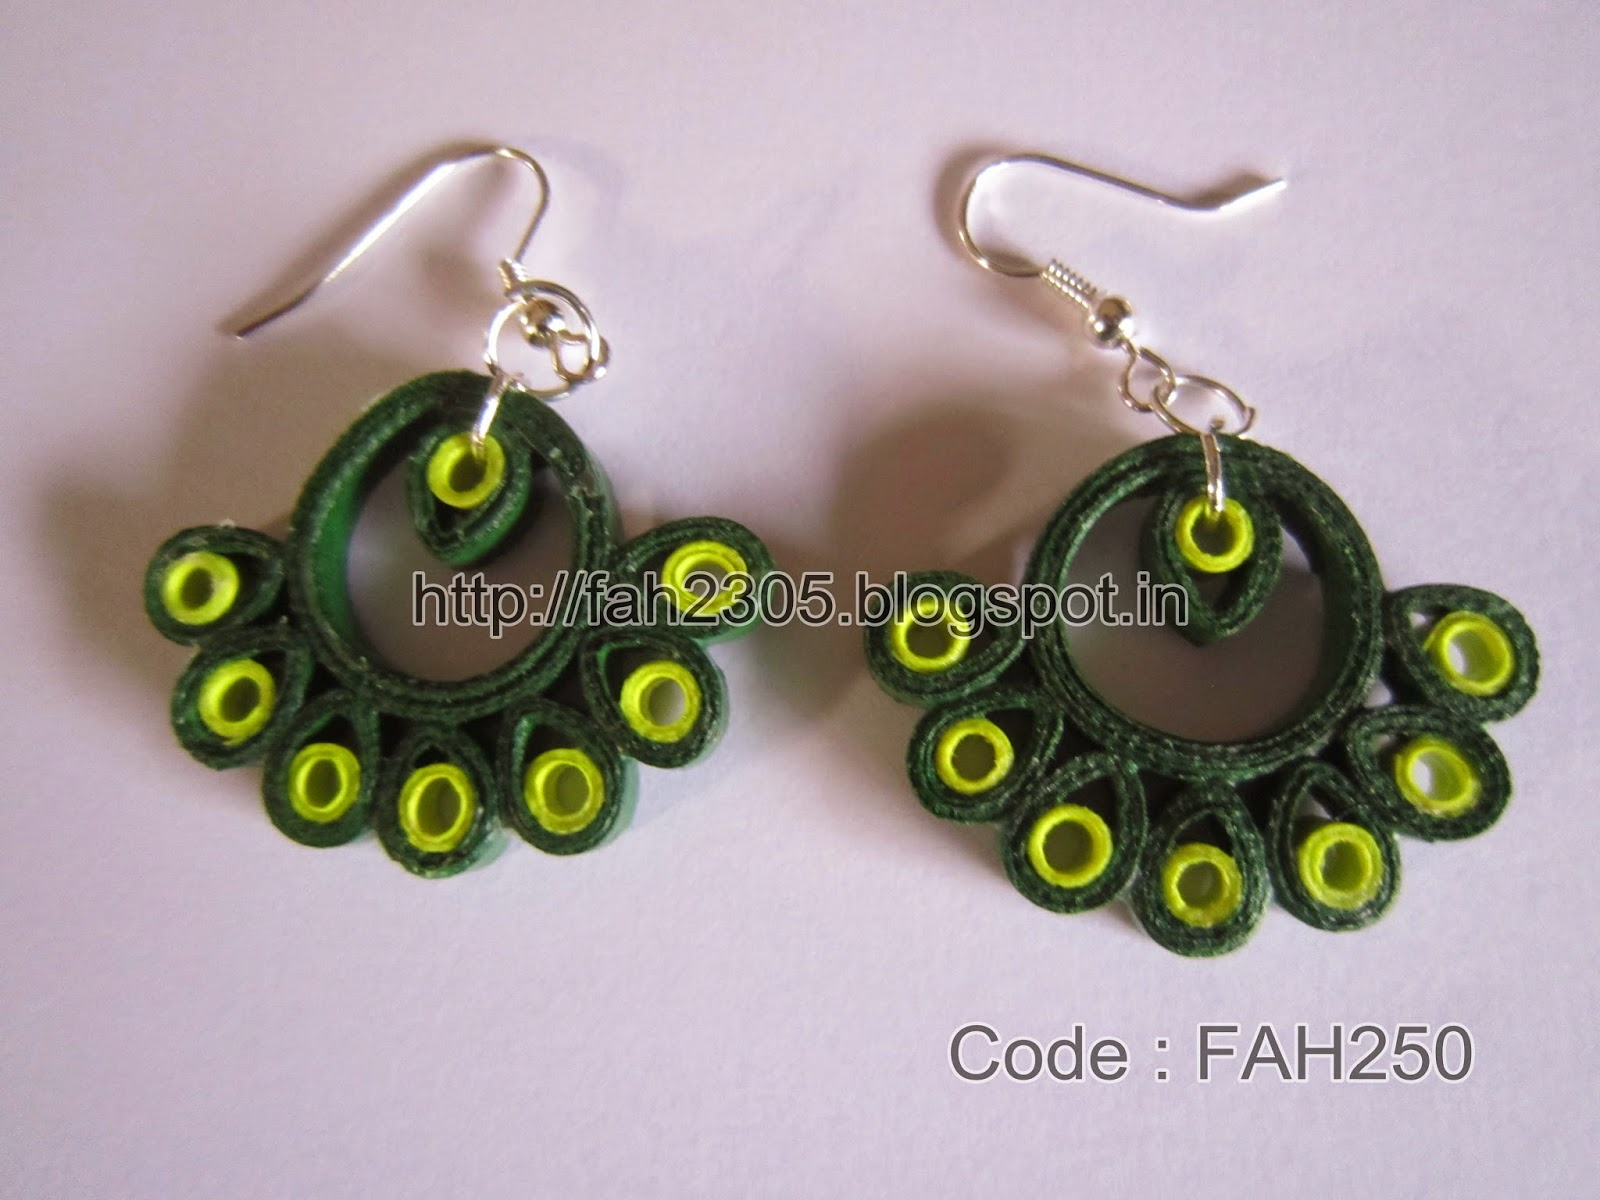 Quilling Earrings Designs Images : Fah Creations: Paper Quilling Earrings - New Designs.